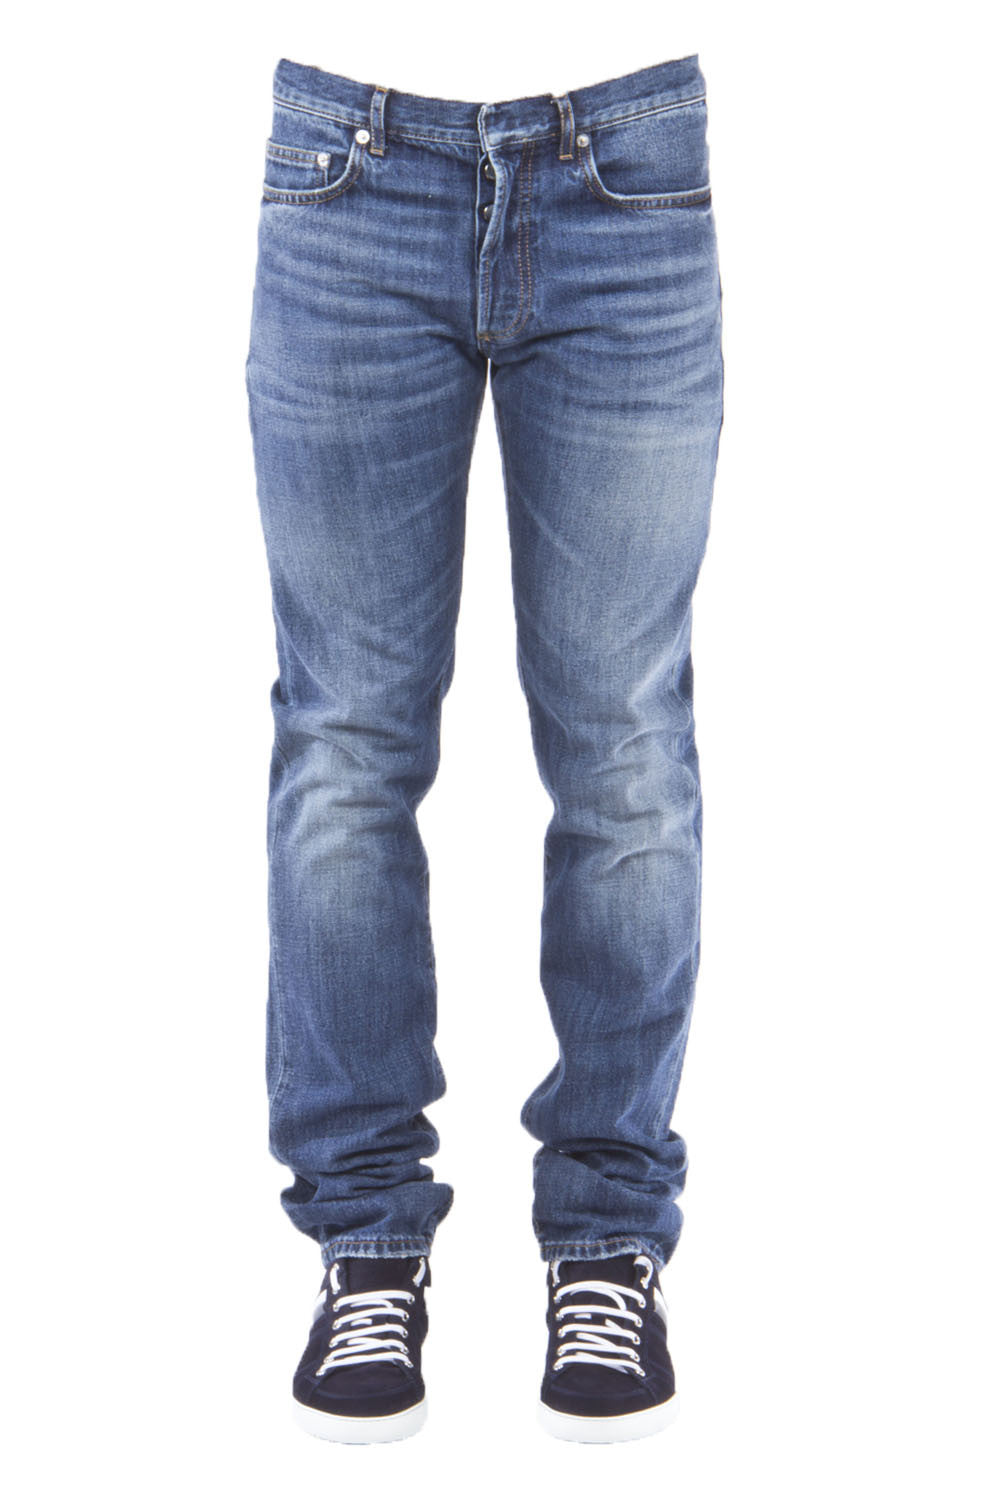 Dior Homme Jeans DIOR HOMME STRAIGHT FIT JEANS